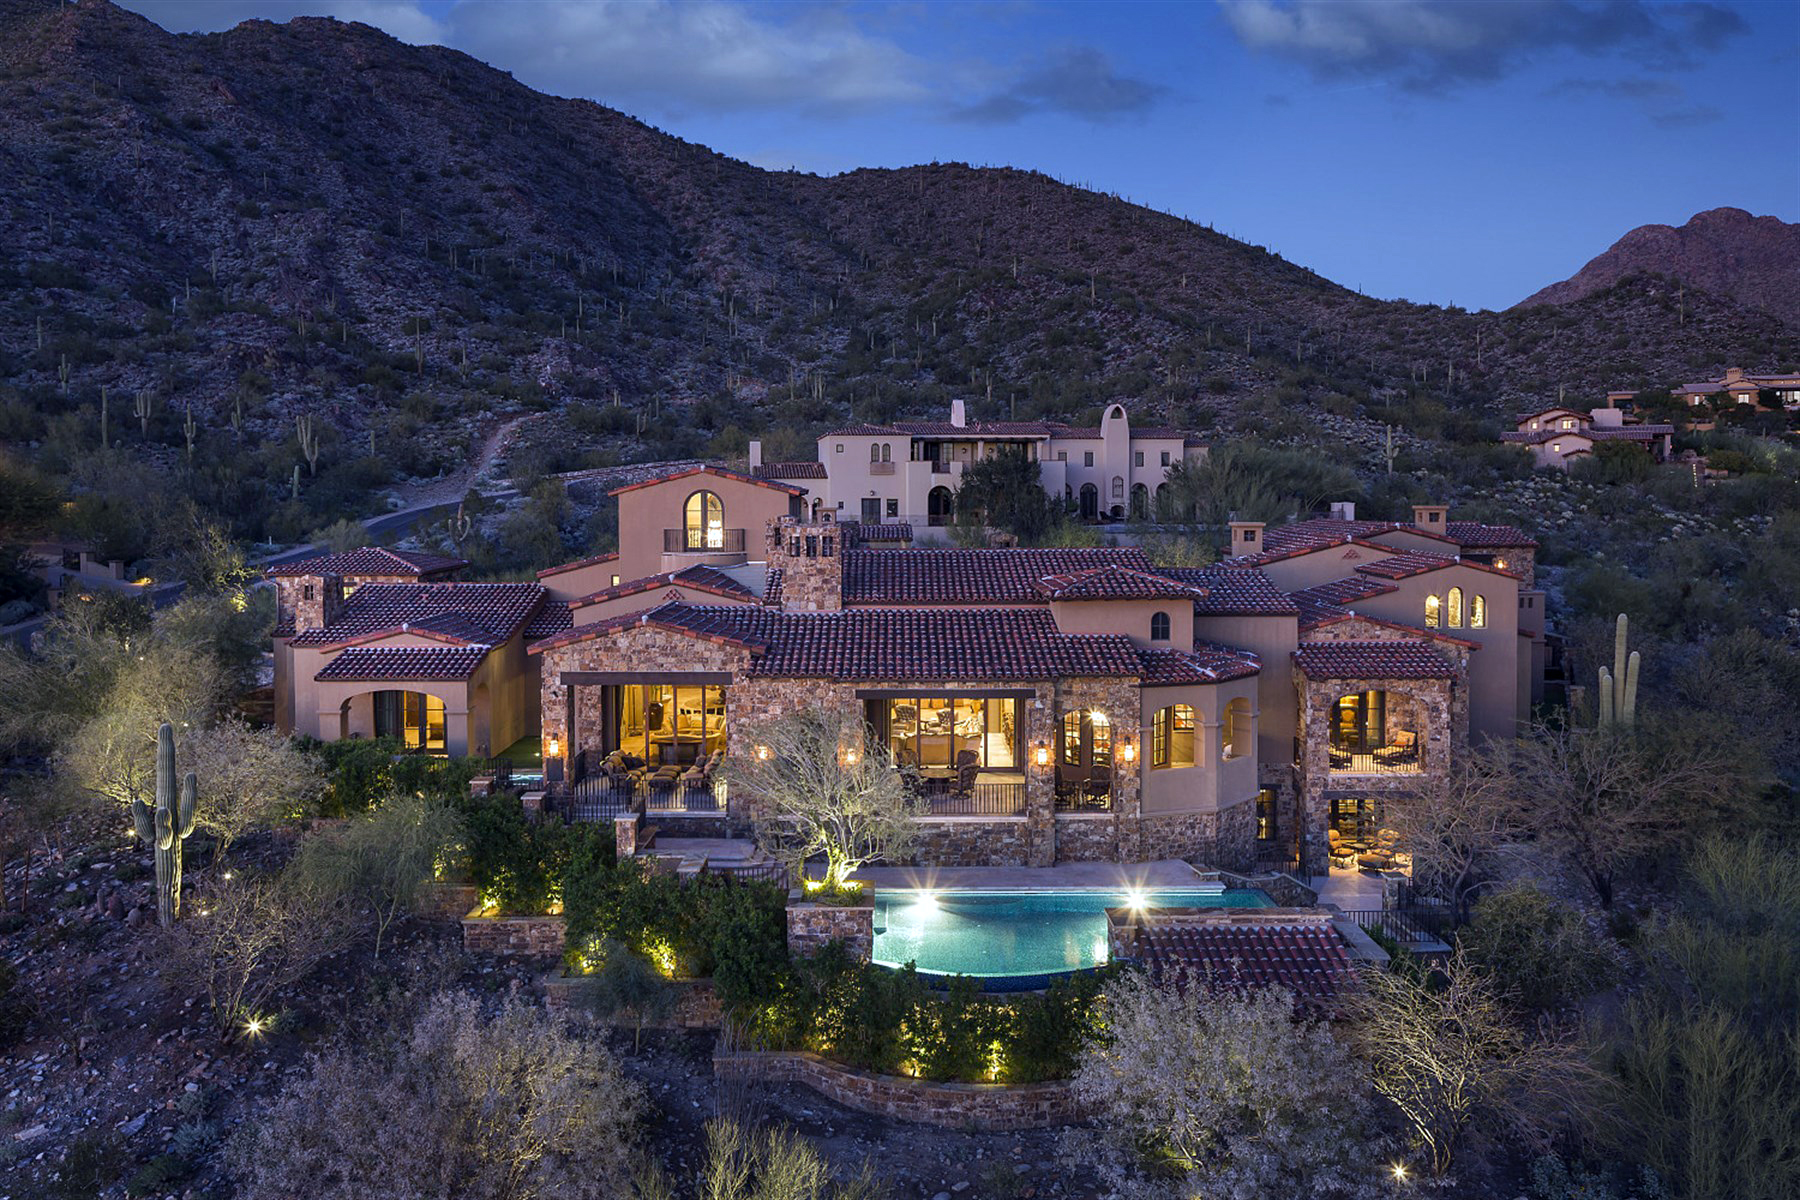 独户住宅 为 销售 在 Exquisite European Manor in The Exclusive Upper Canyon at Silverleaf 20913 N 104th Street #1488 Scottsdale, 亚利桑那州 85255 美国